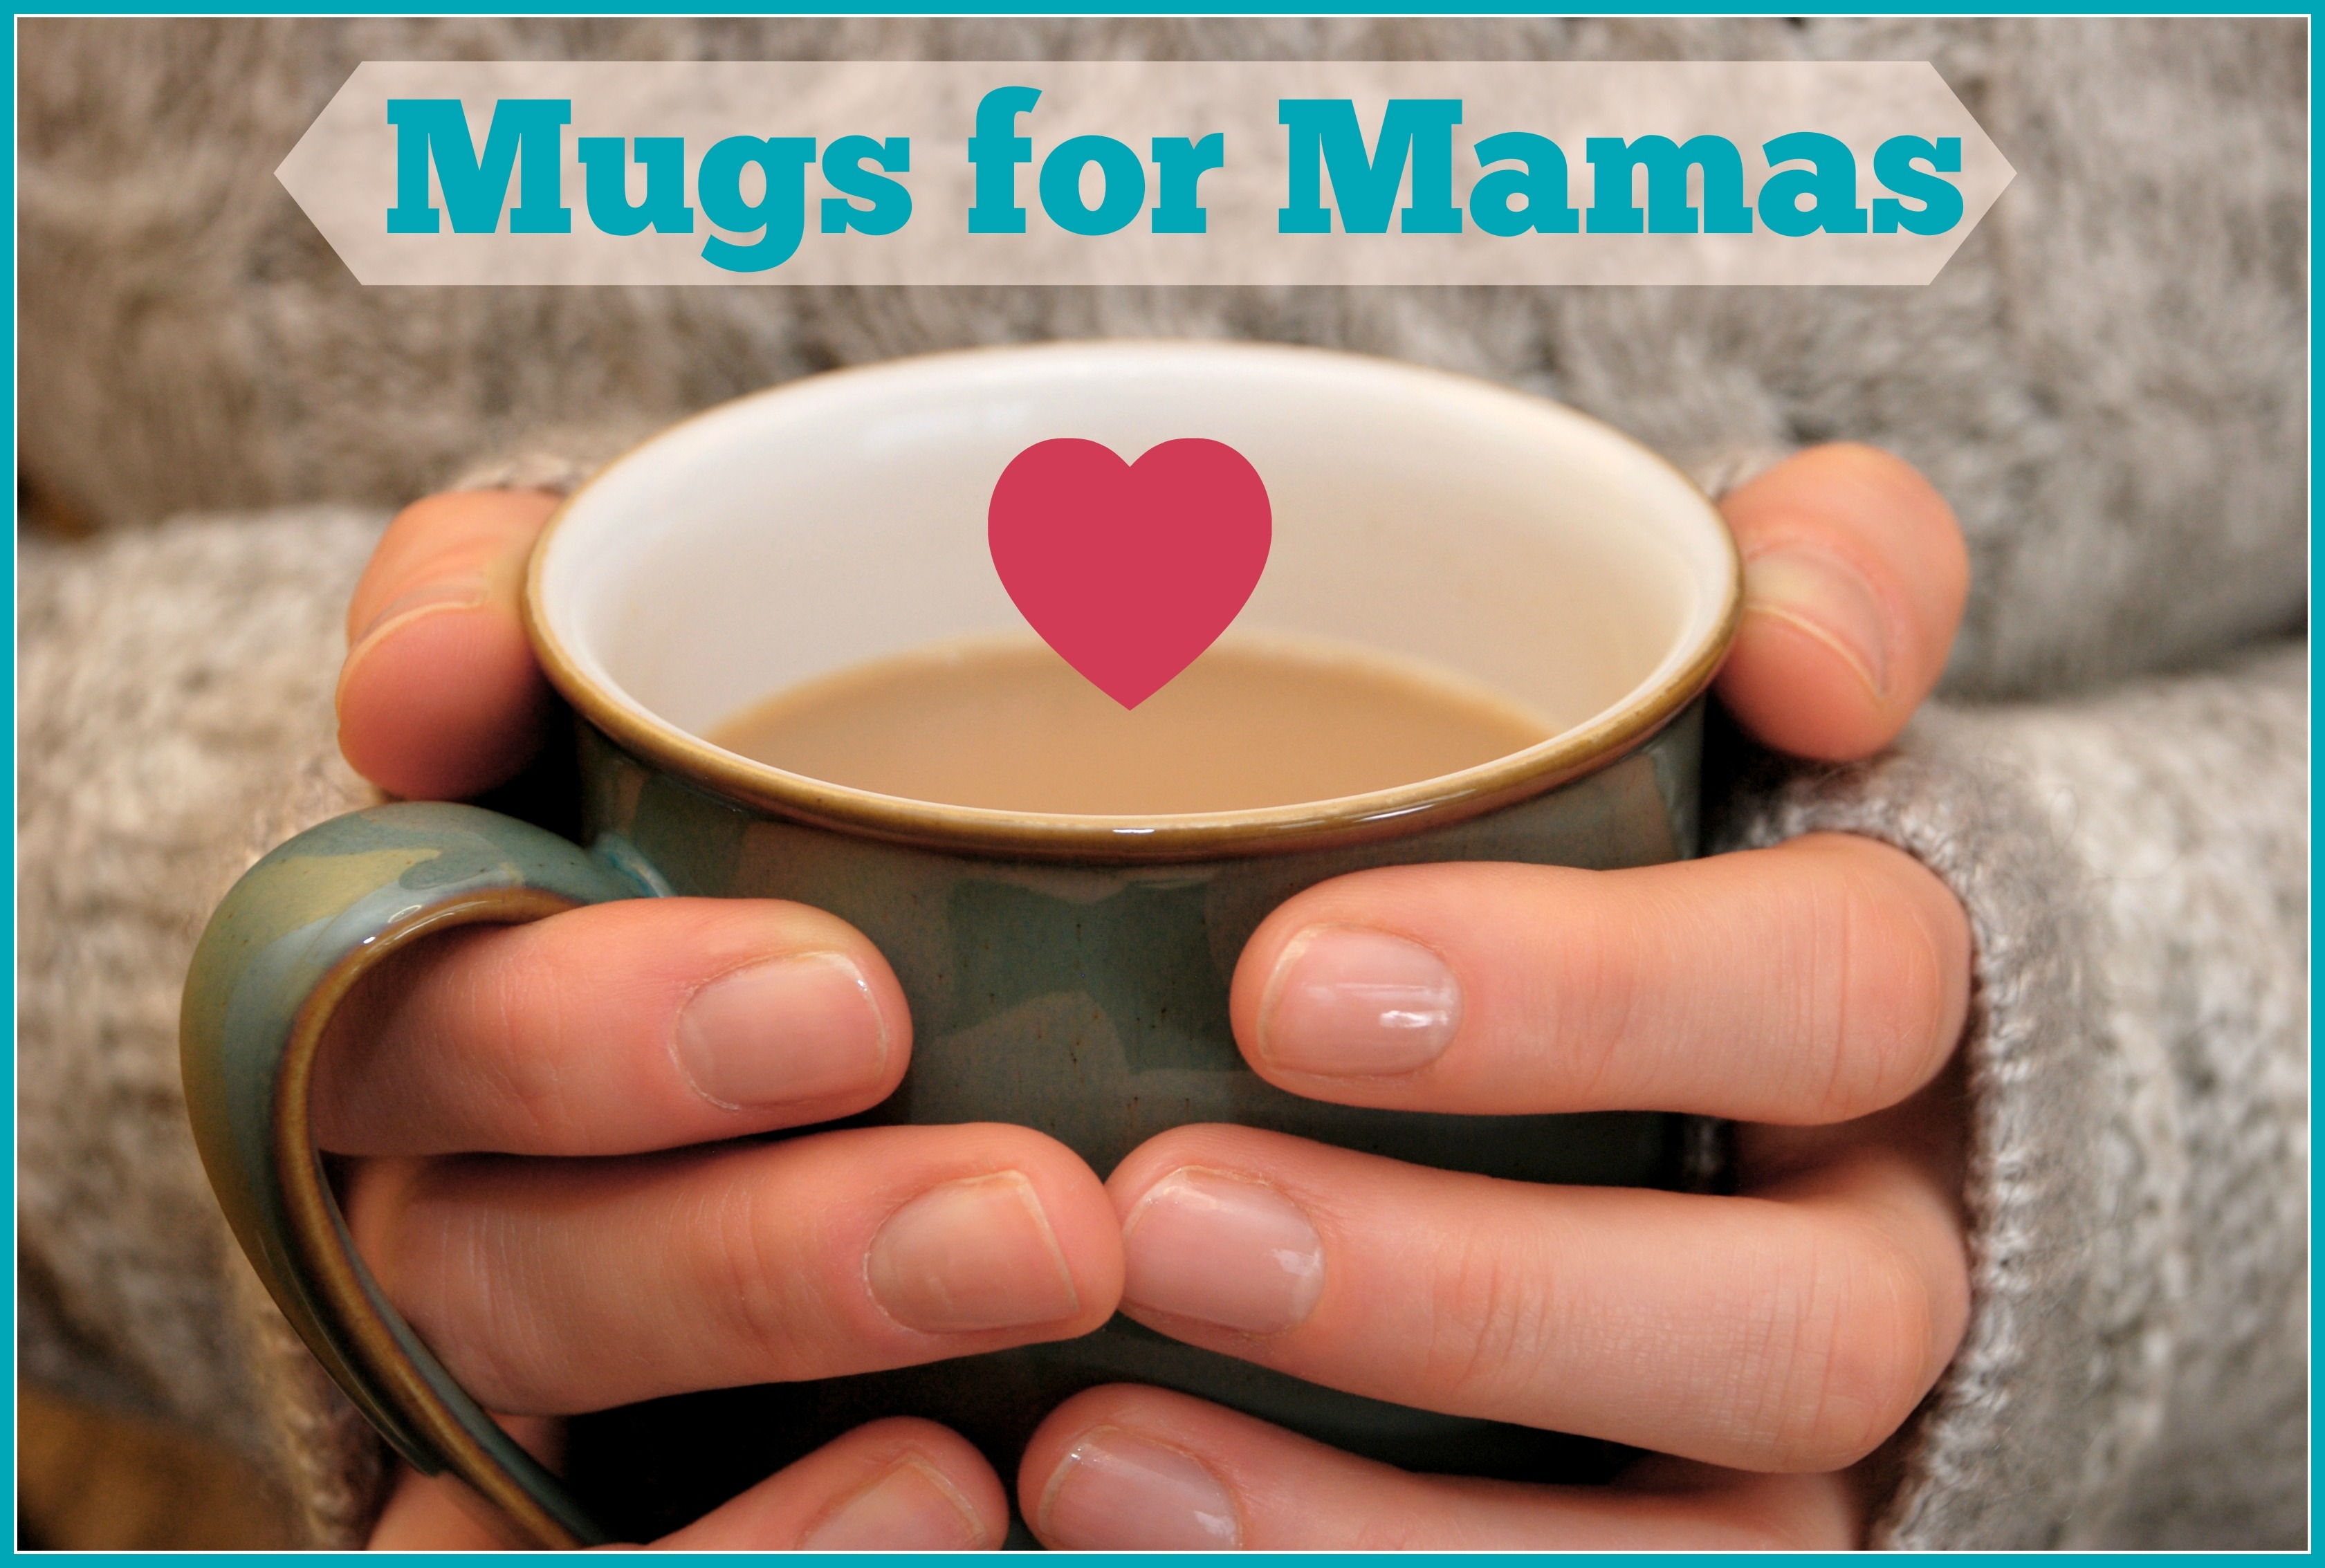 Mugs for Mamas Learn More